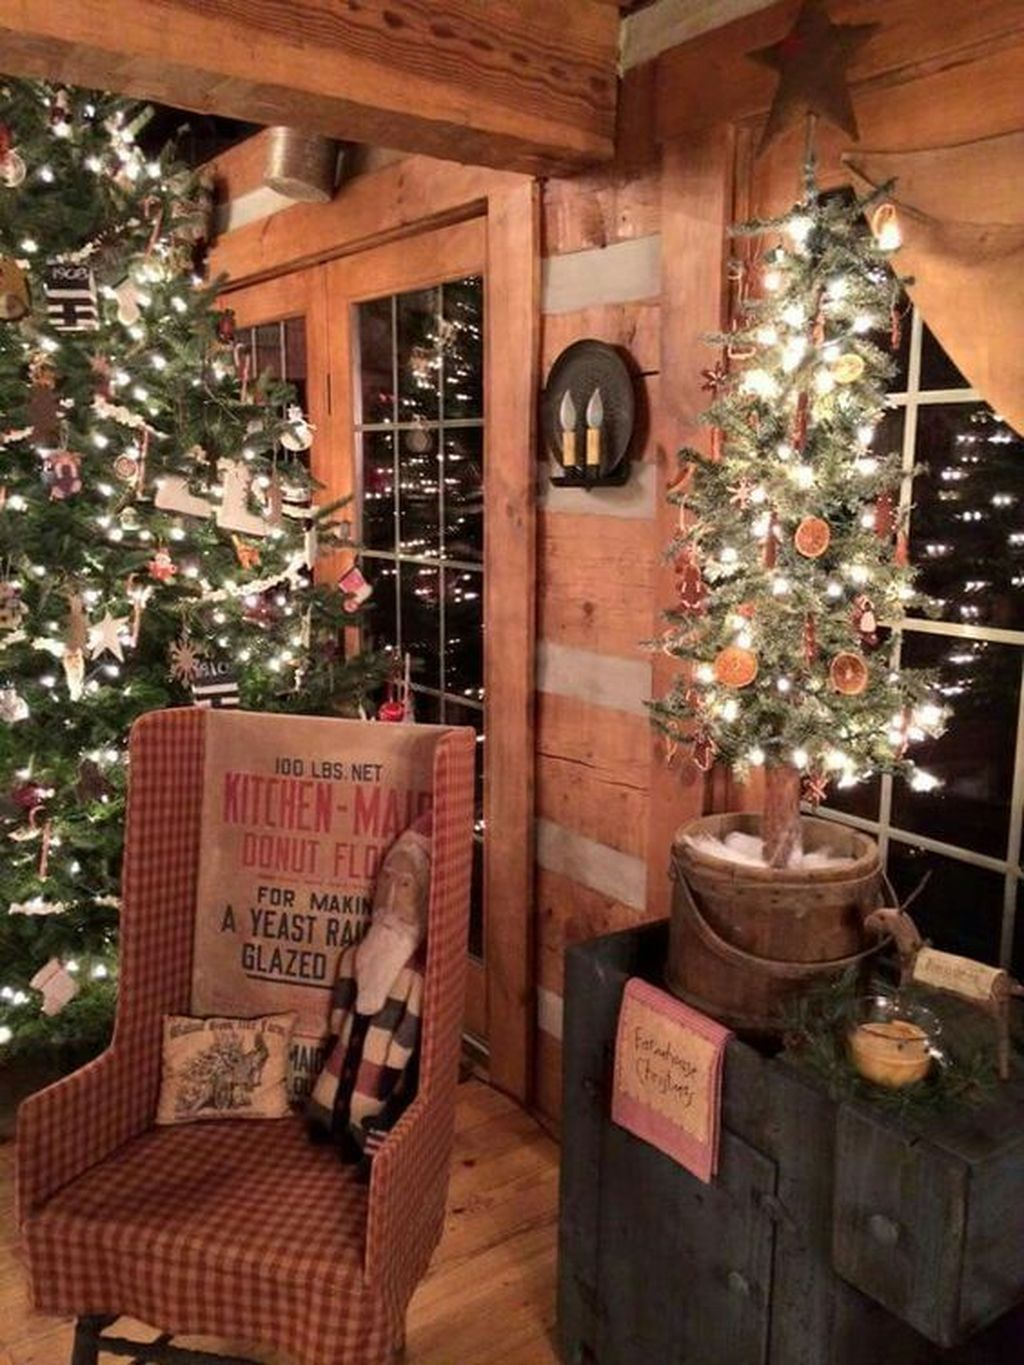 39 Superb Primitive Country Christmas Trees Ideas To Copy Right Now Primitive Country Christmas Primitive Christmas Tree Primitive Christmas Decorating